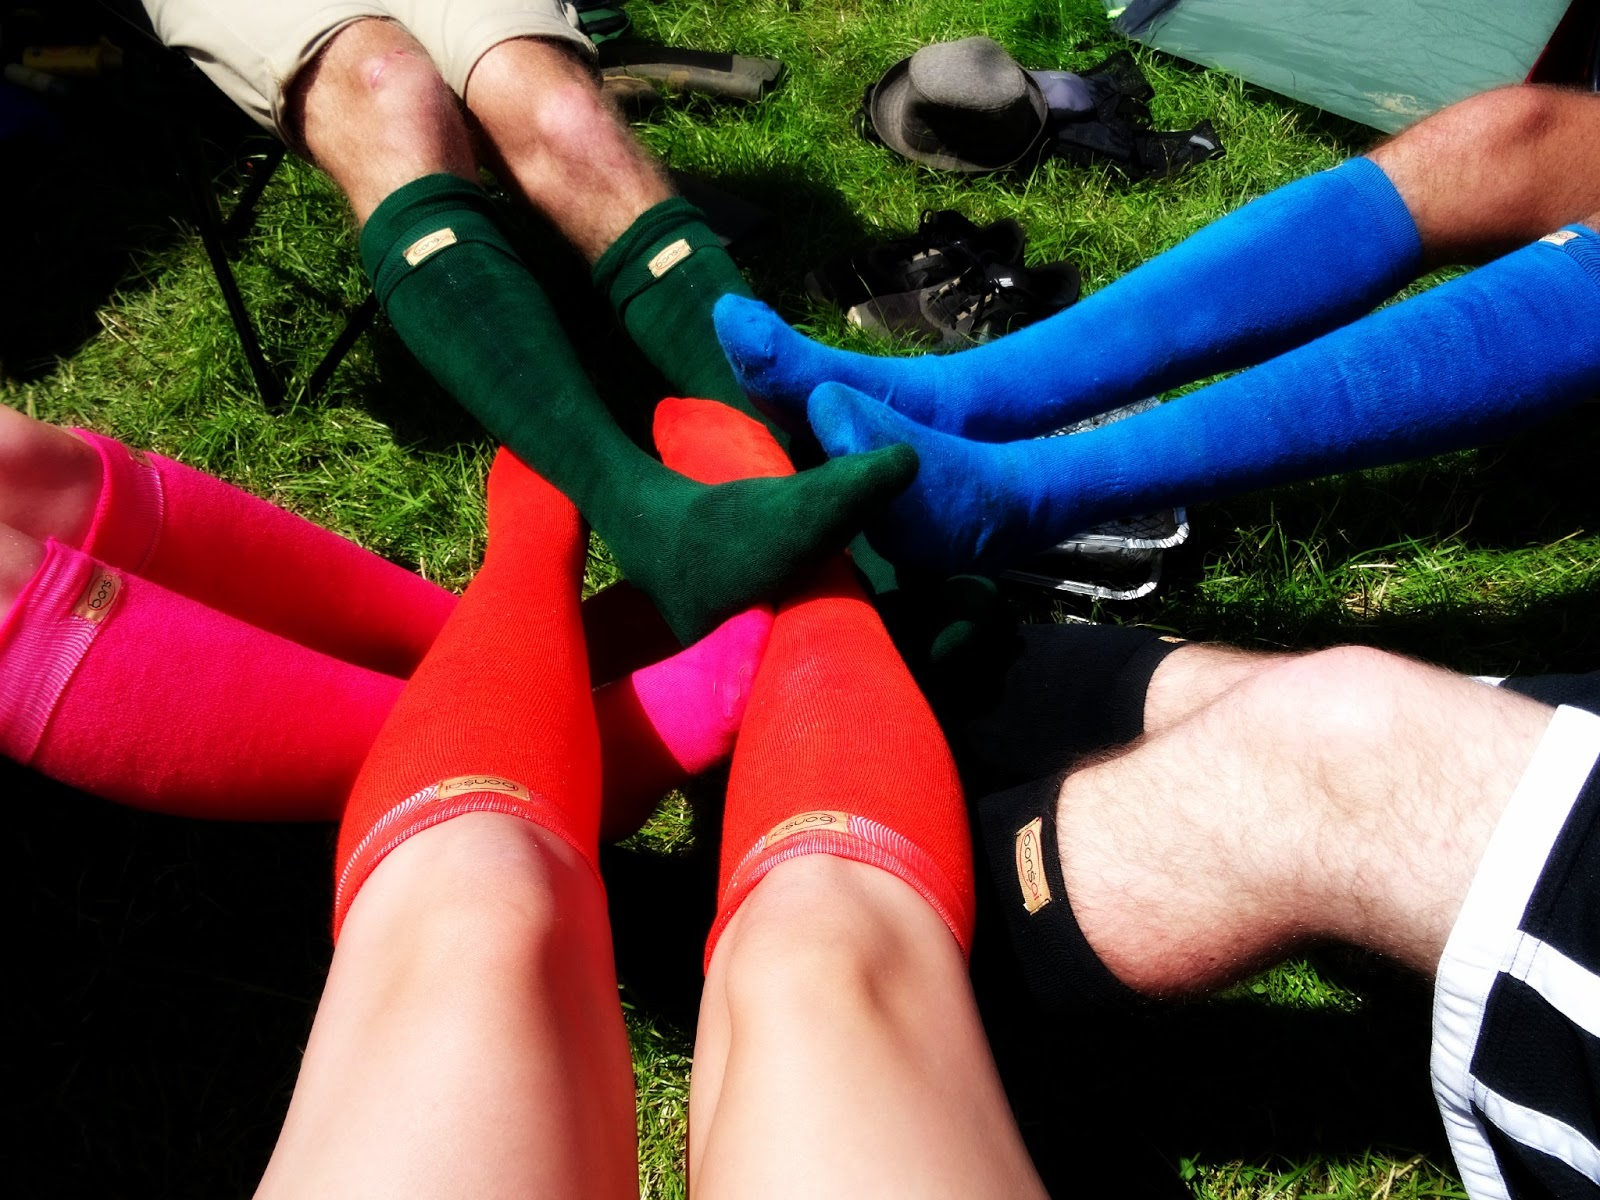 Bonsai Socks goe Glastonbury